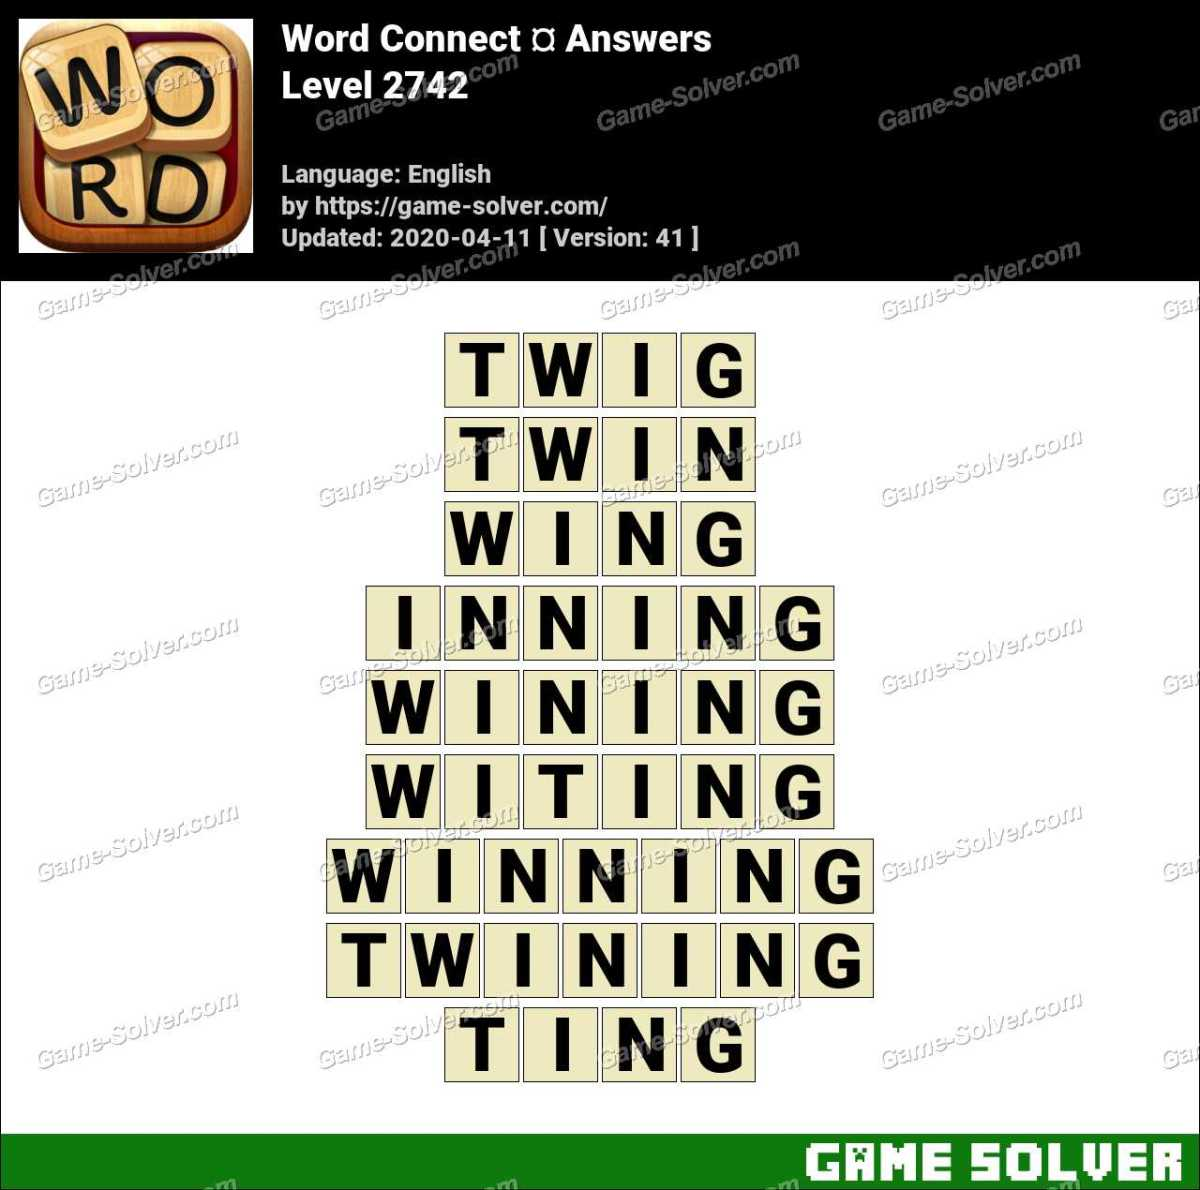 Word Connect Level 2742 Answers